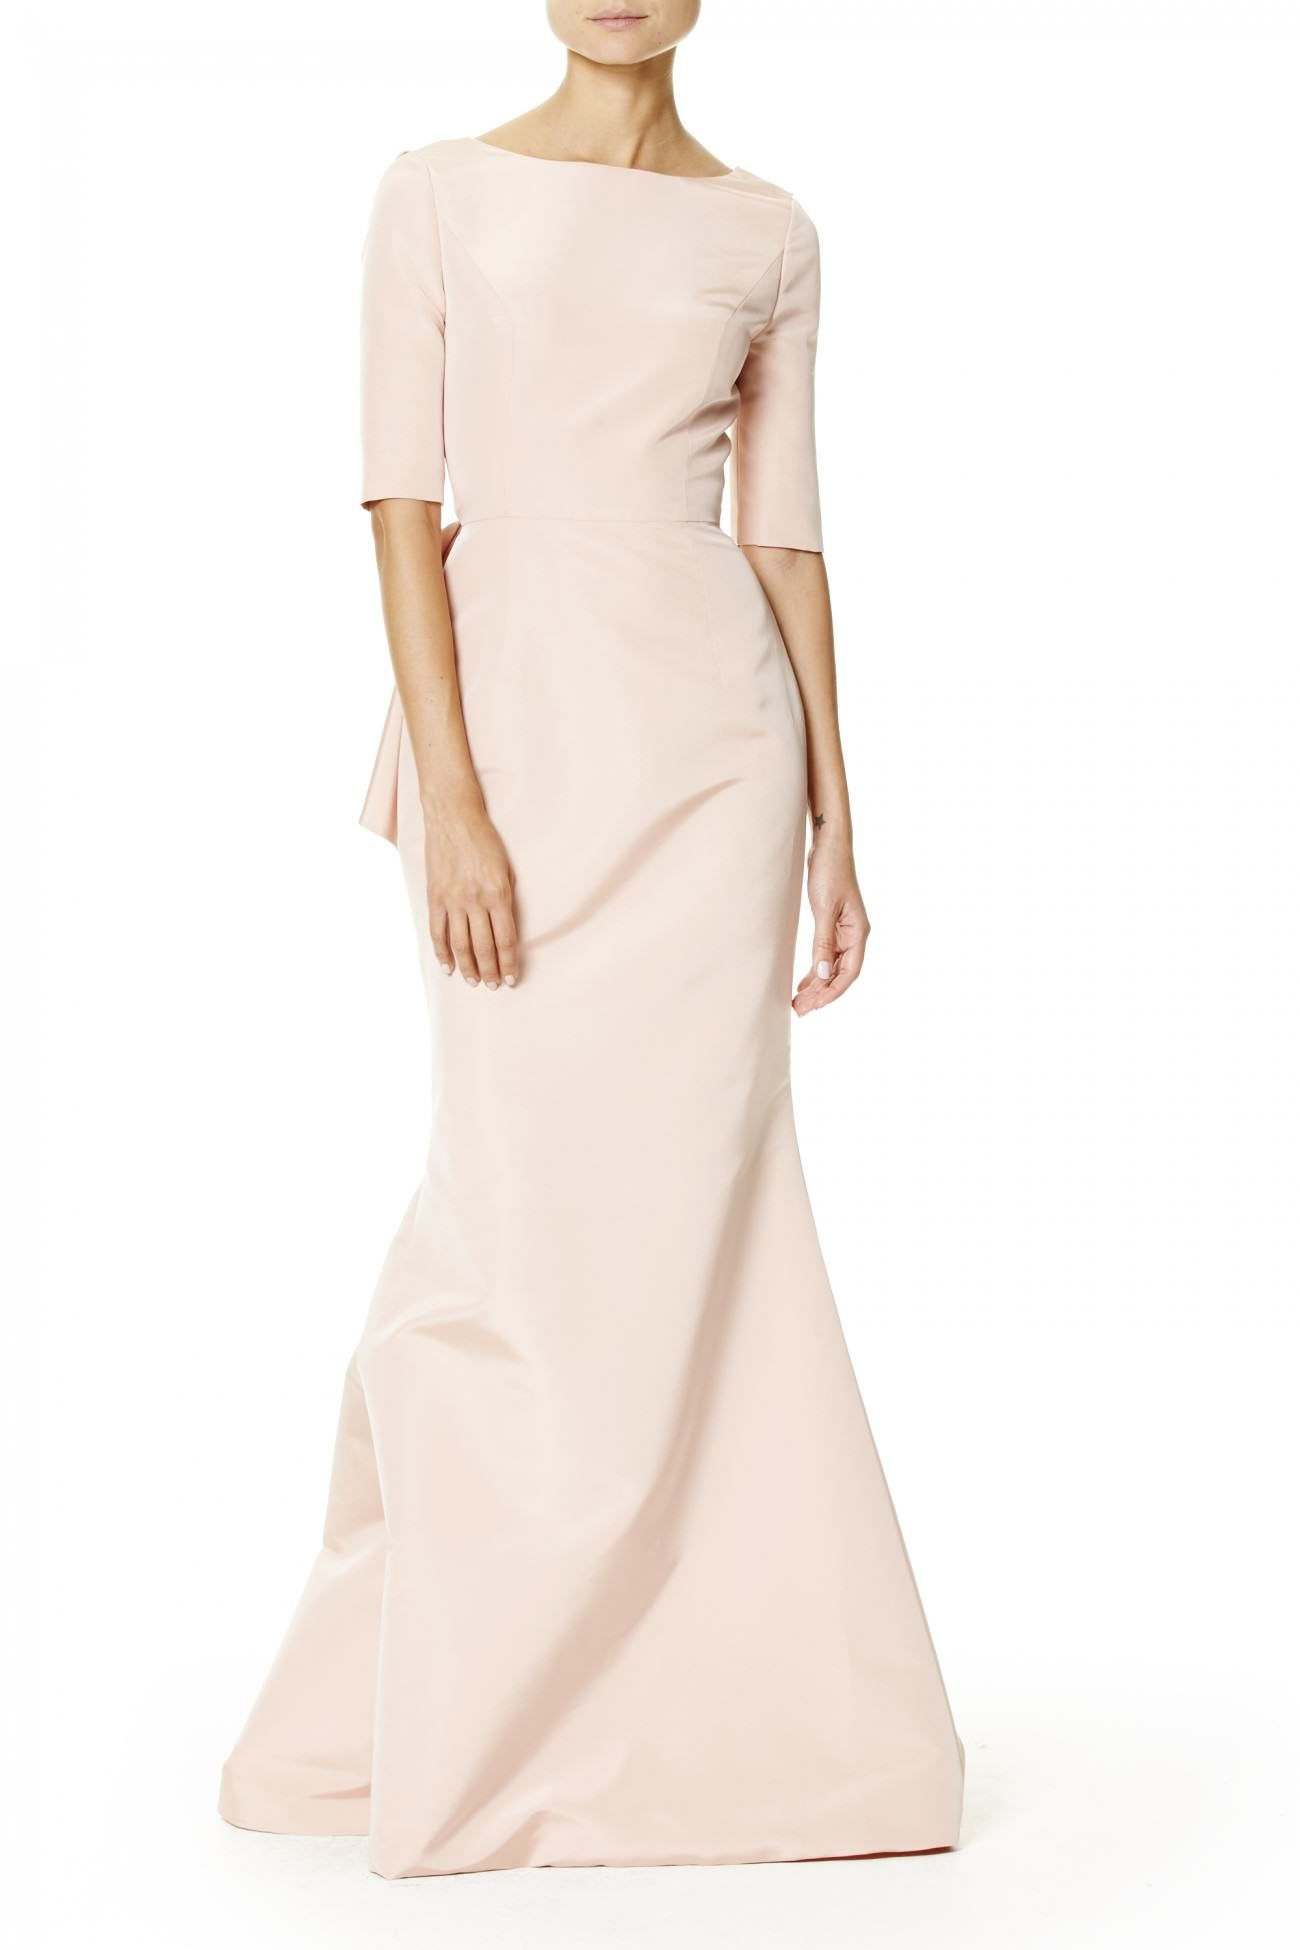 Open Back Gown Carolina Herrera Clearance Nicekicks Extremely For Sale Sale How Much Latest Collections Online Outlet Choice 5Zldhk